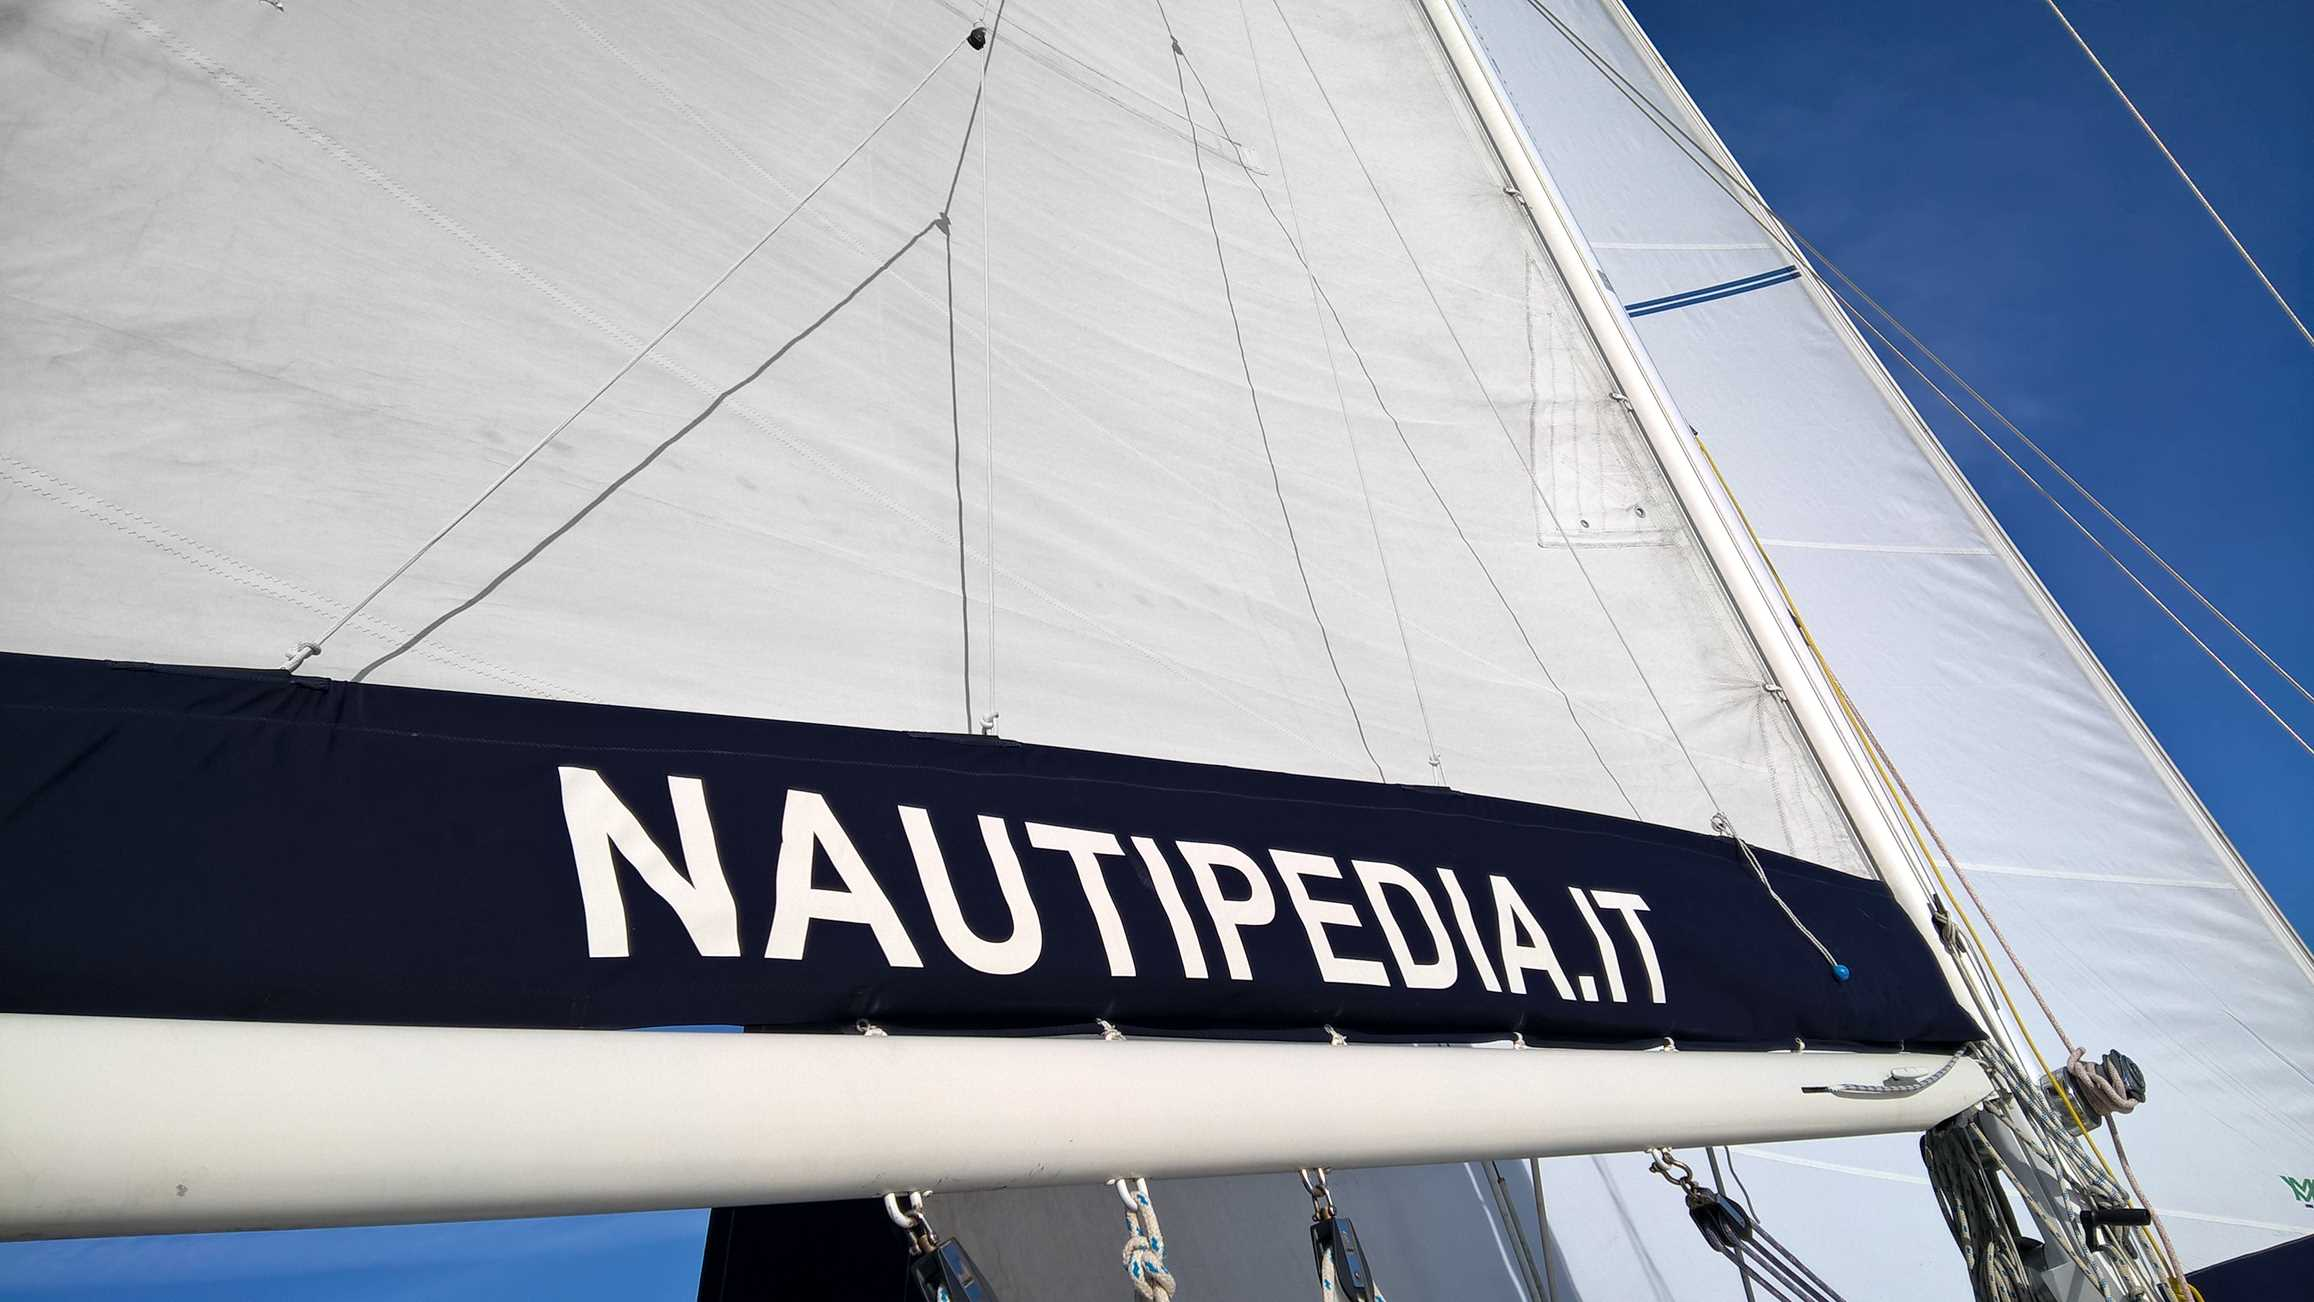 NAUTIPEDIA.IT SAYONARA MARE LASPEZIA.jpg